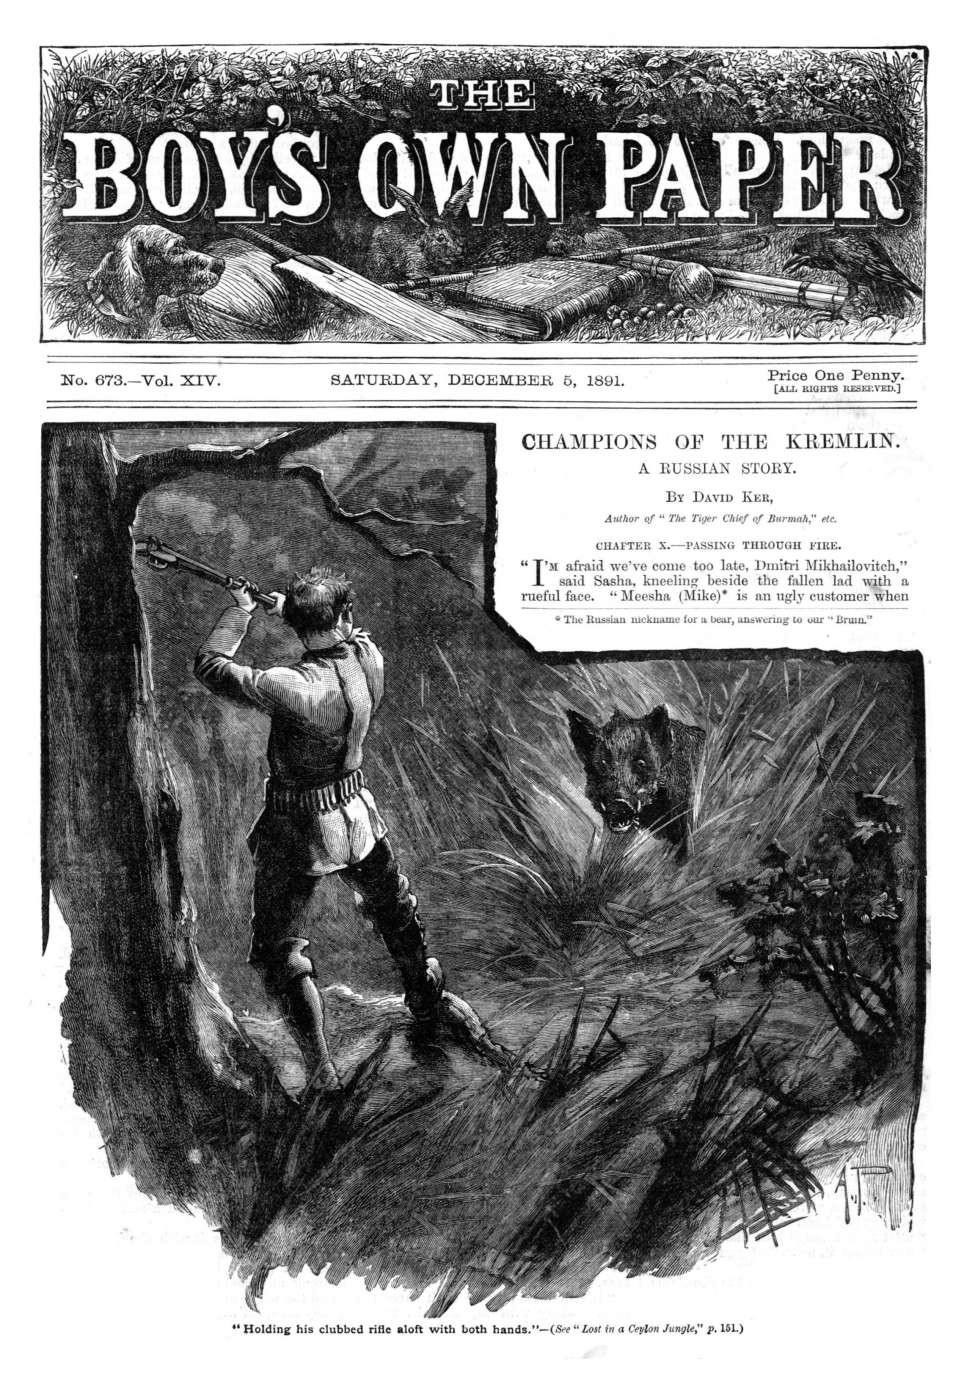 Comic Book Cover For The Boy's Own Paper v14 673